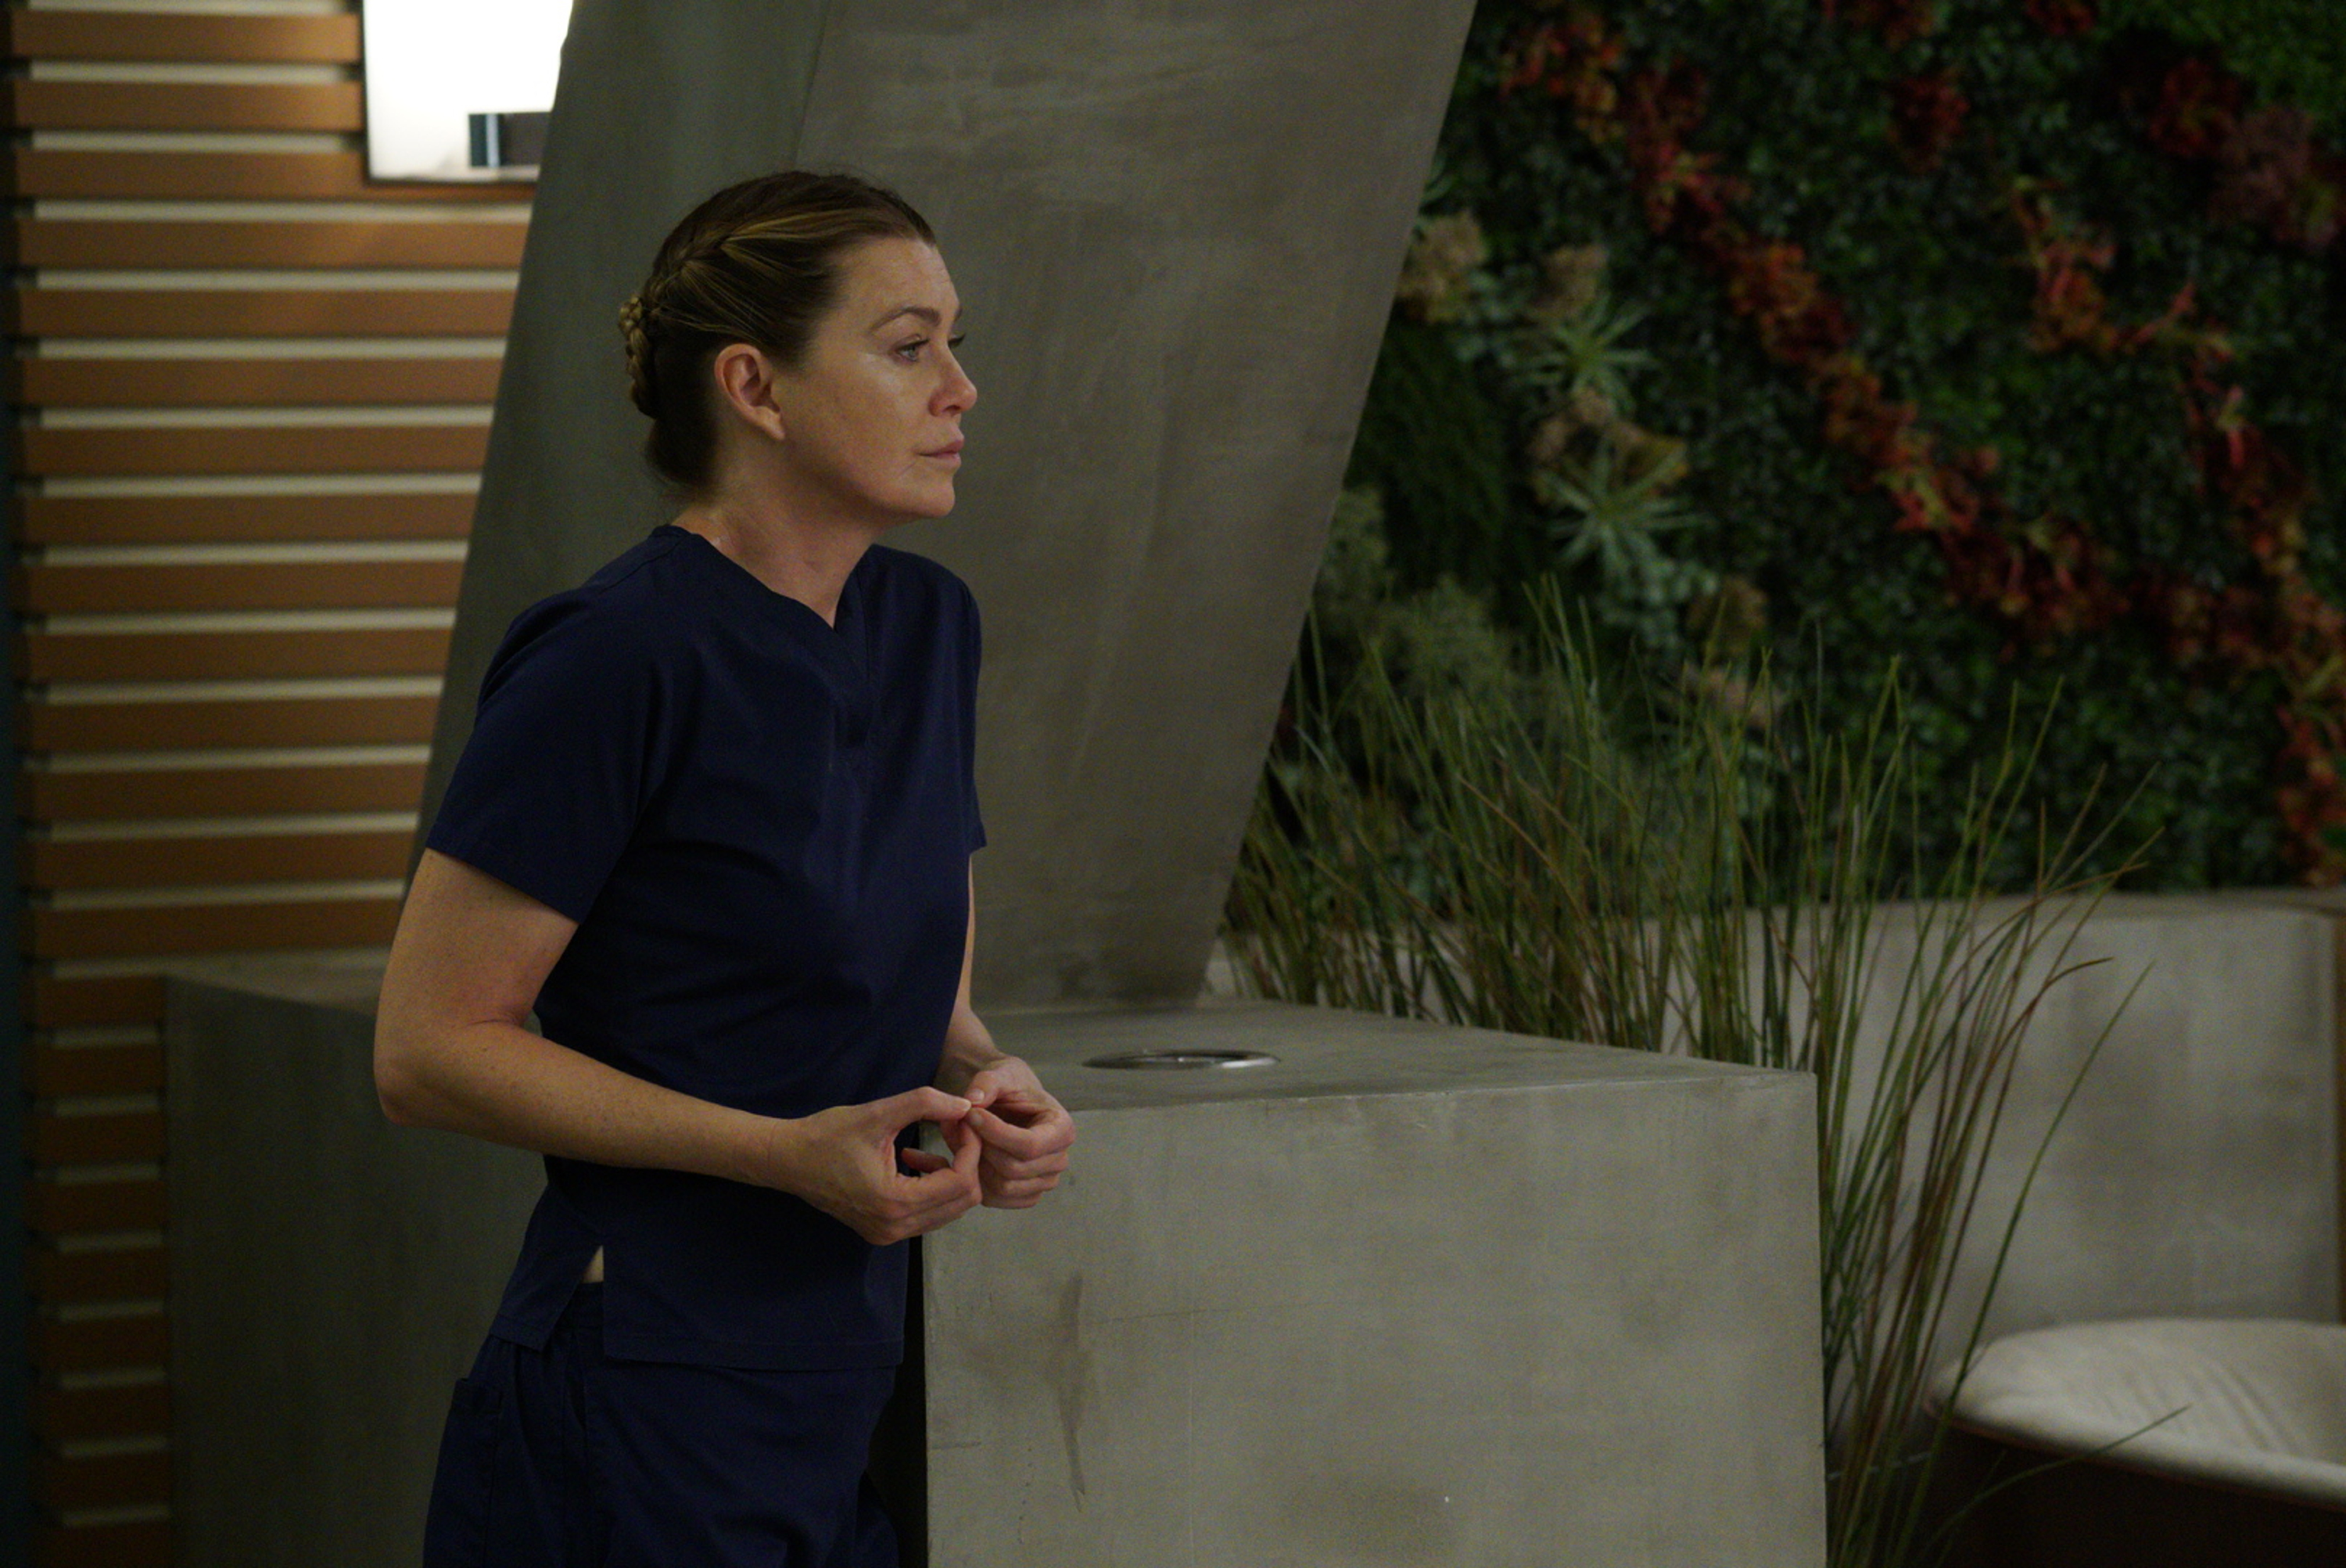 """GREY'S ANATOMY - """"Four Seasons in One Day"""" - Jo finally faces her estranged, abusive husband Paul Stadler, while Grey Sloan continues to work with the FBI after a hacker has compromised the hospital's computer system, on the midseason return of """"Grey's Anatomy,"""" THURSDAY, JAN. 18 (8:00-9:00 p.m. EST), on The ABC Television Network. (ABC/Richard Cartwright)ELLEN POMPEO"""